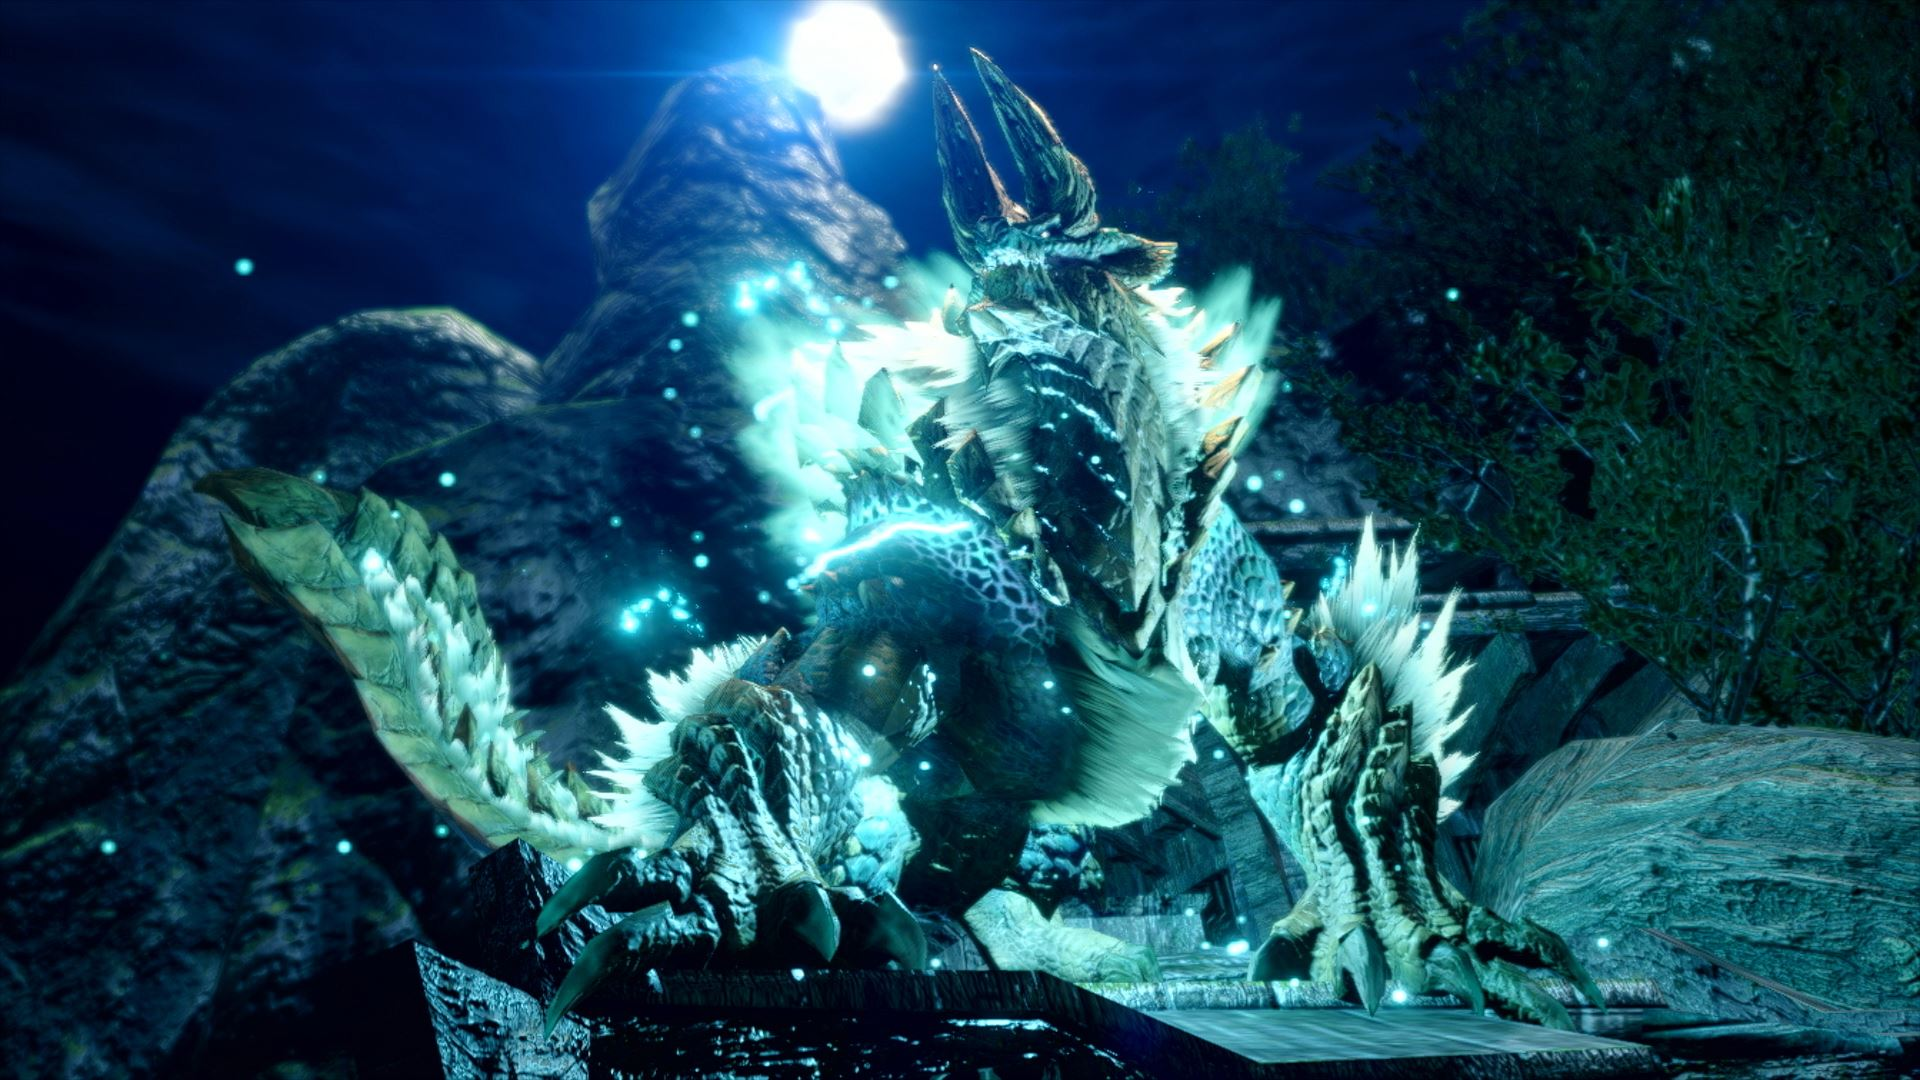 Zinogre howling at the moon in Monster Hunter Rise.